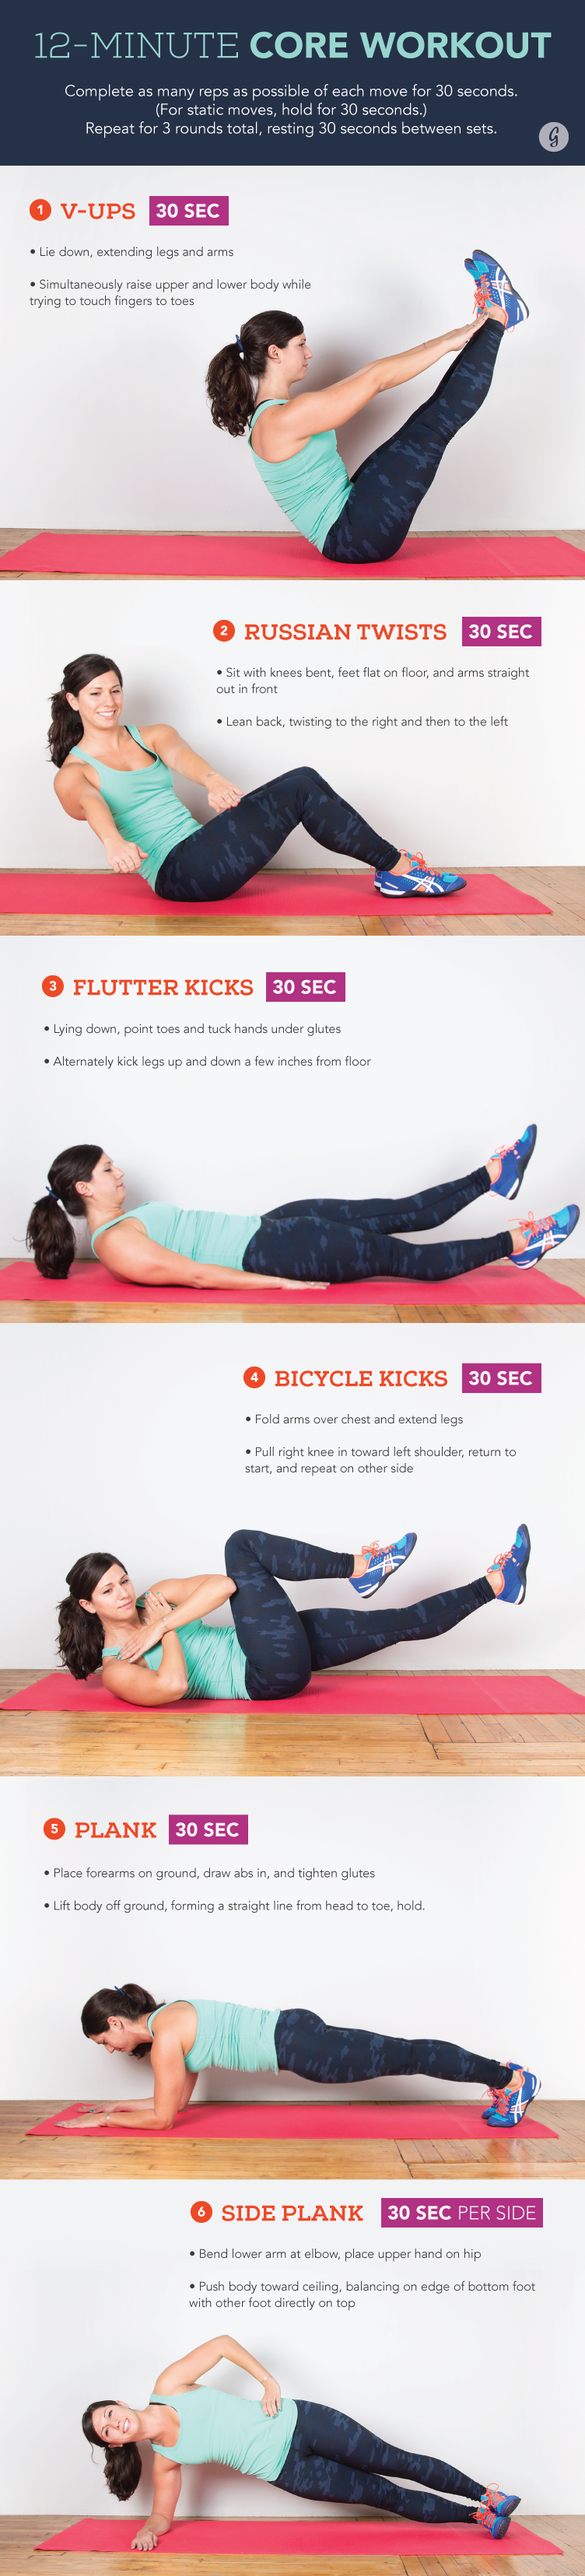 Bodyweight Exercises for Your Core